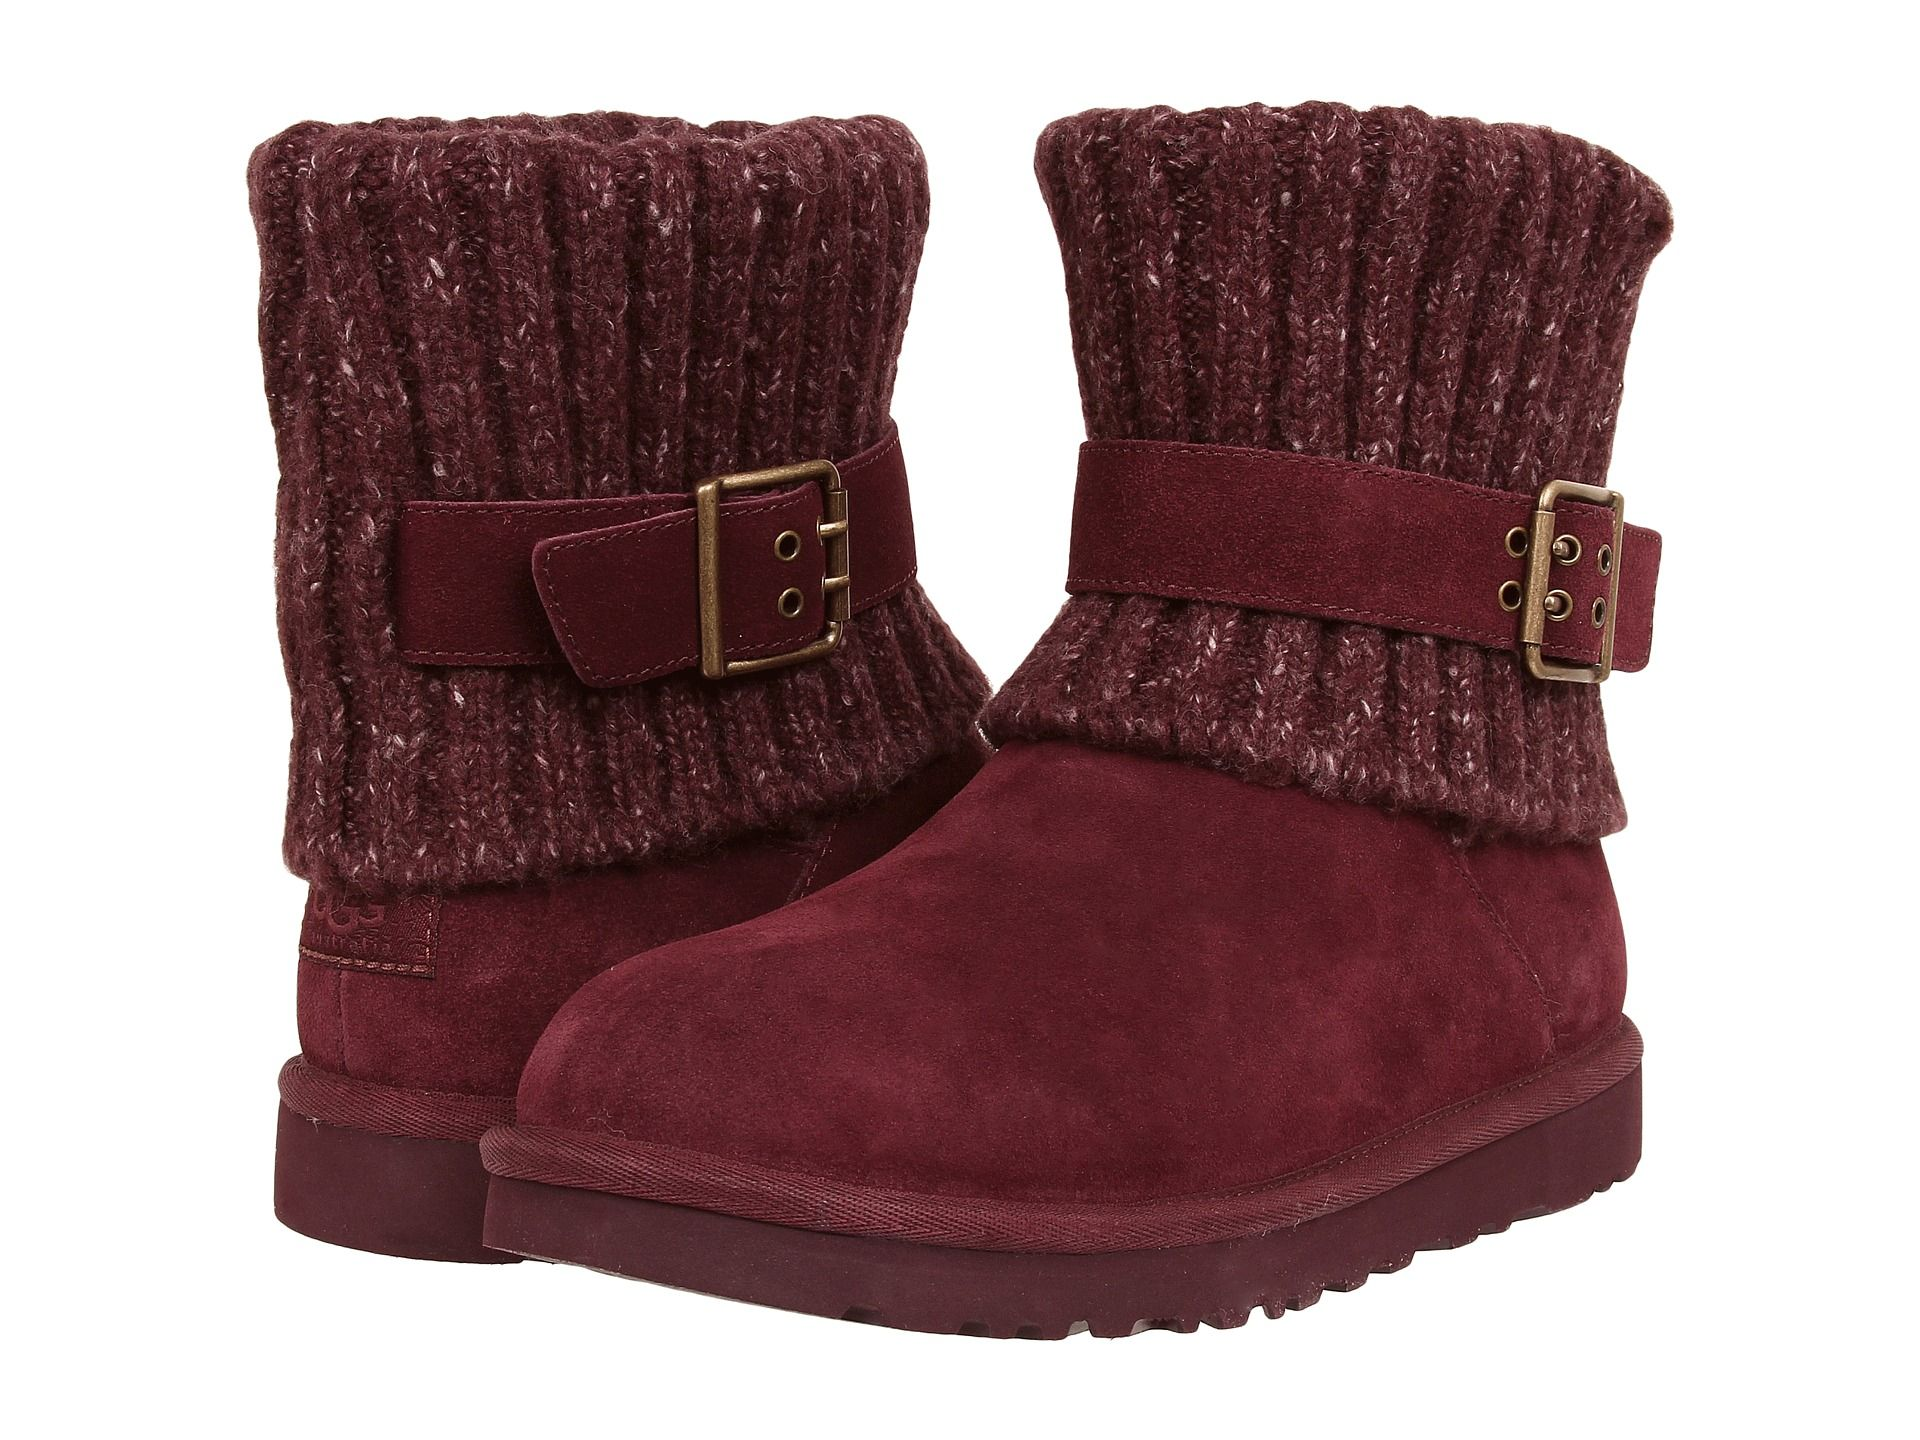 Love Uggs Warm So Comfy These Things Are And I Like wqwx6fZ